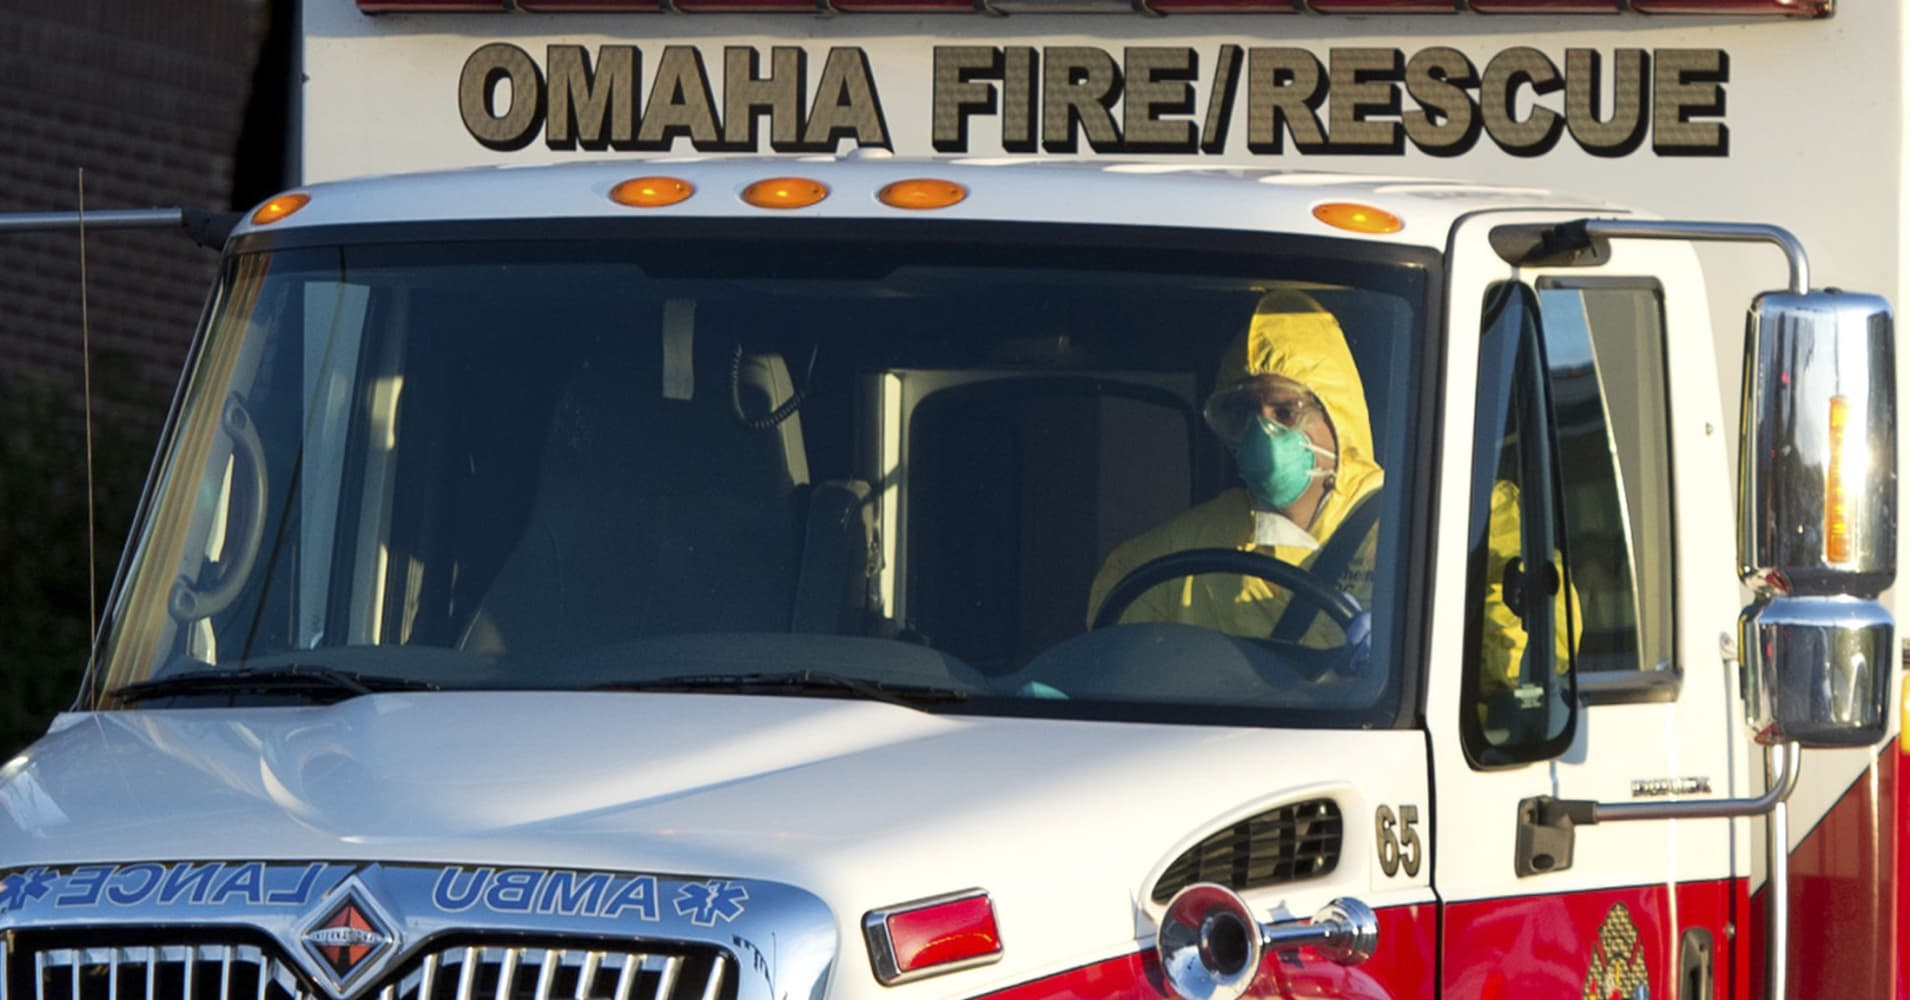 An ambulance transports Ebola victim Ashoka Mukpo to the Nebraska Medical Center in Omaha, Oct. 6, 2014.